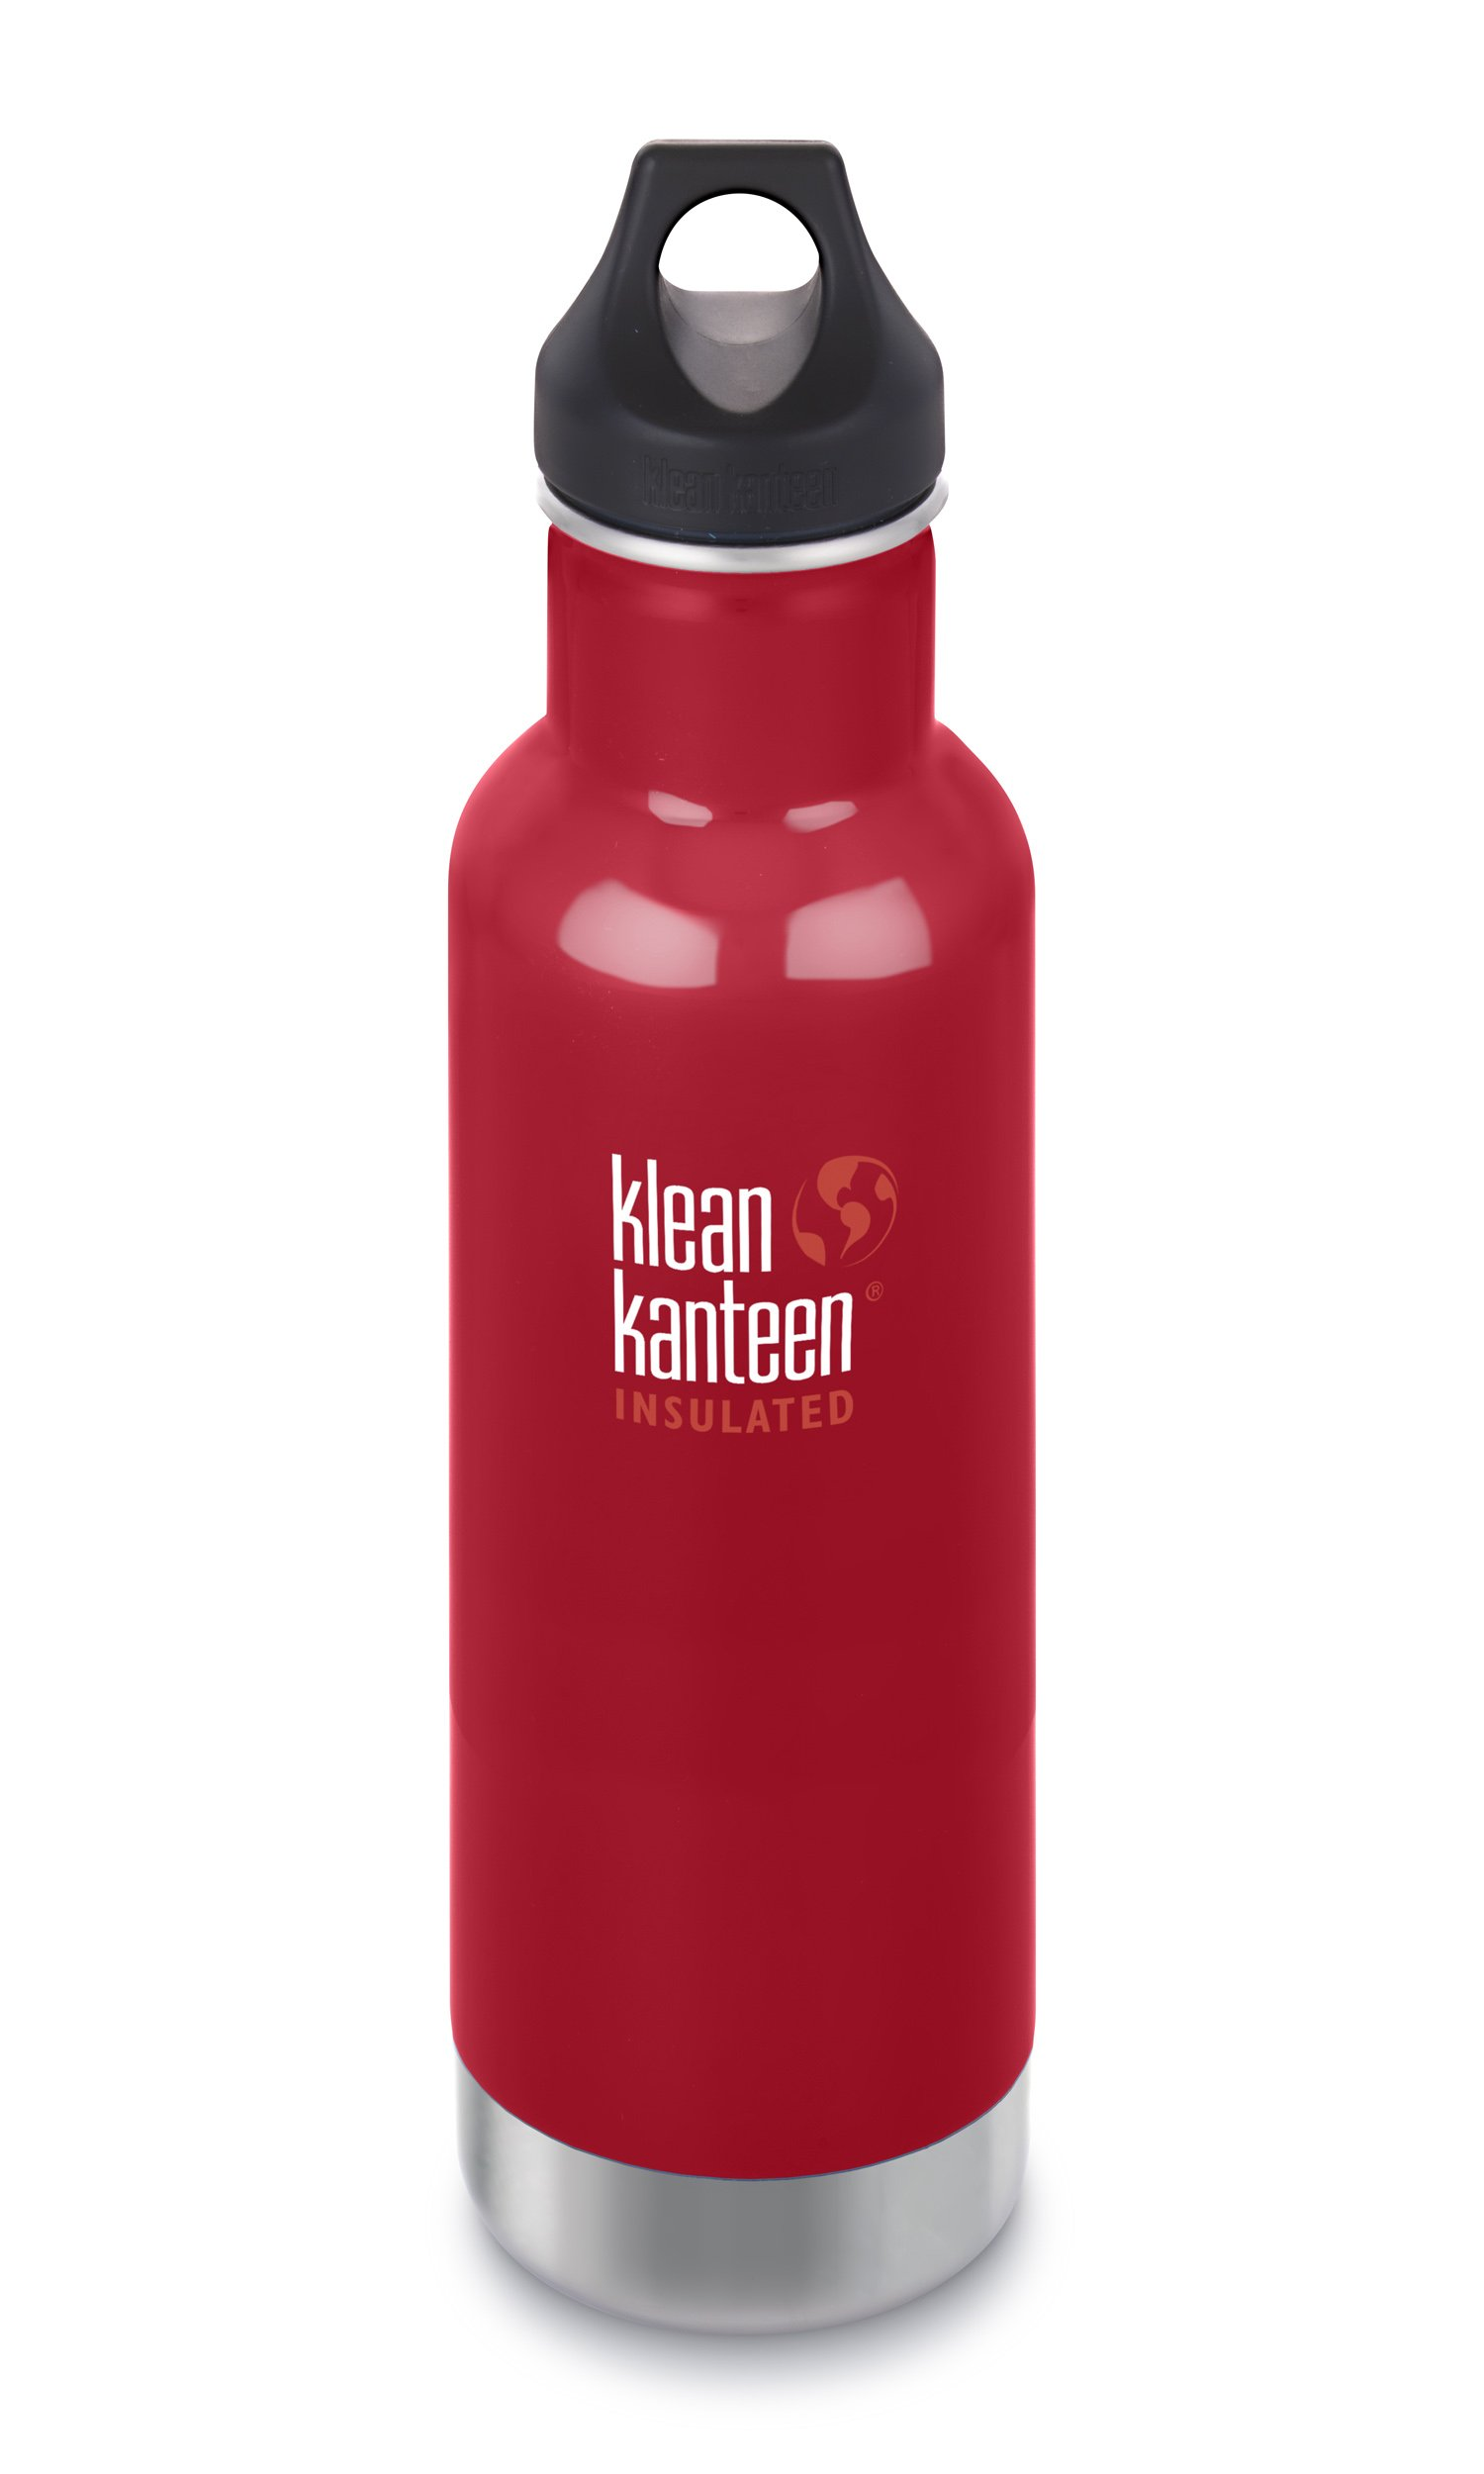 a5991d9c52 Klean Kanteen 20oz Classic Stainless Steel Water Bottle with Klean Coat,  Double Wall Vacuum Insulated